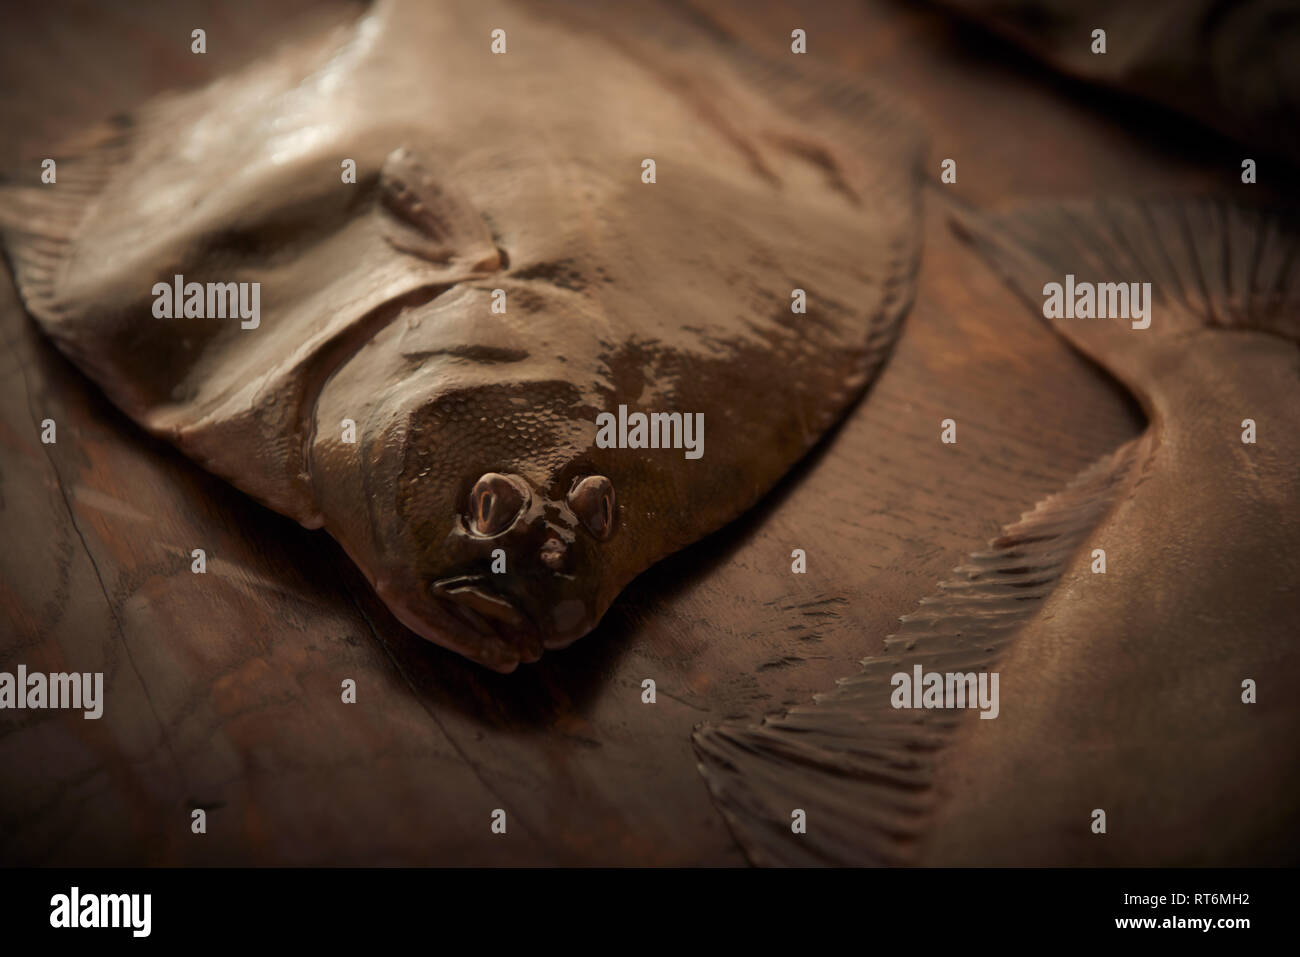 Flatfish lying on a timber table ready to be prepared for cooking. - Stock Image